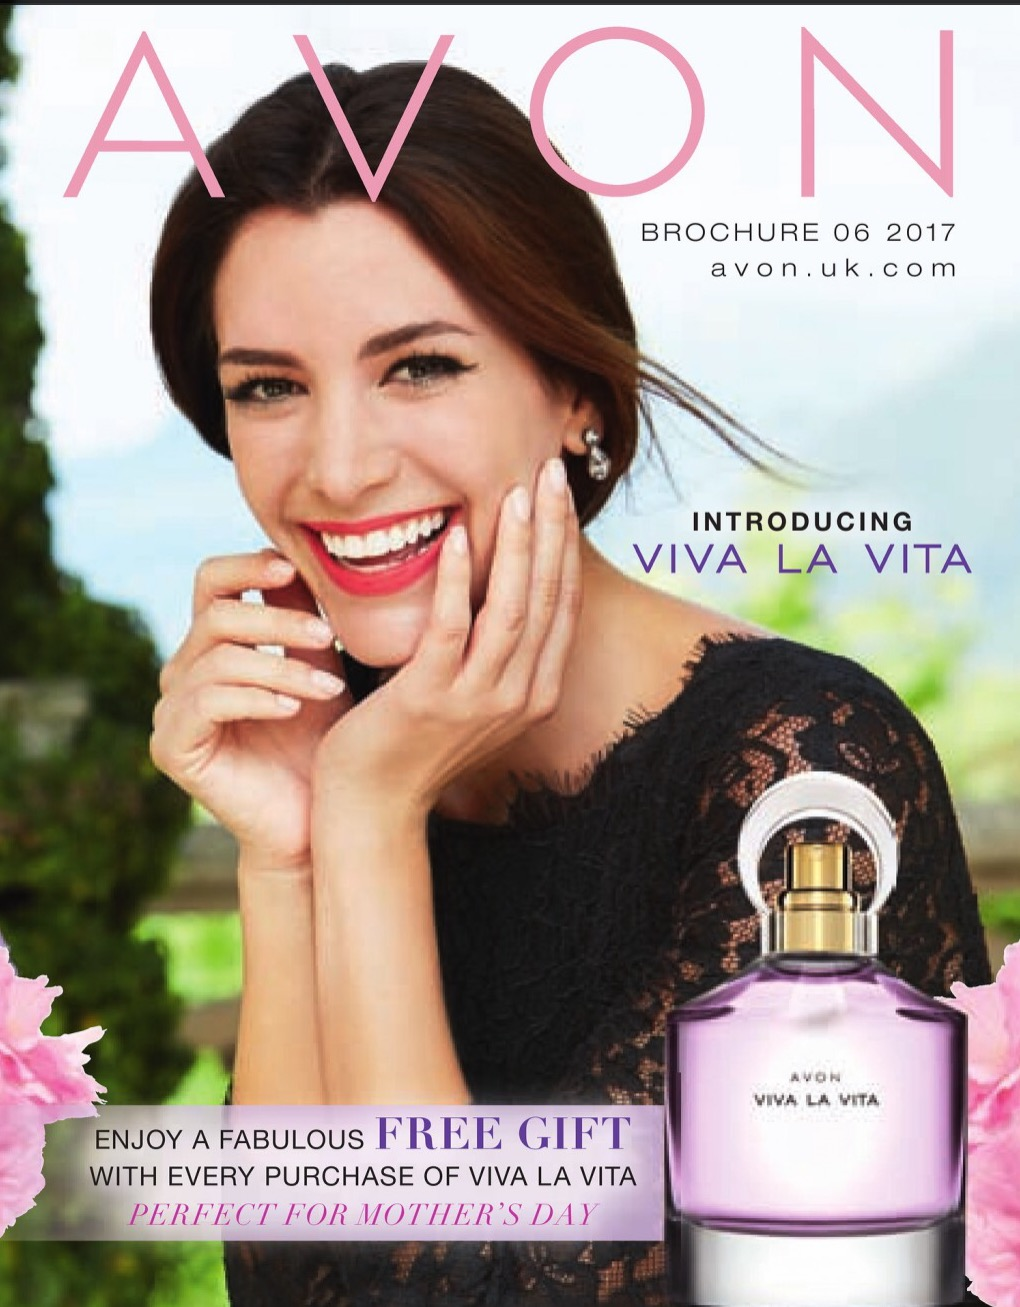 Avon Campaign 6 2017 UK Brochure Online | Join Avon